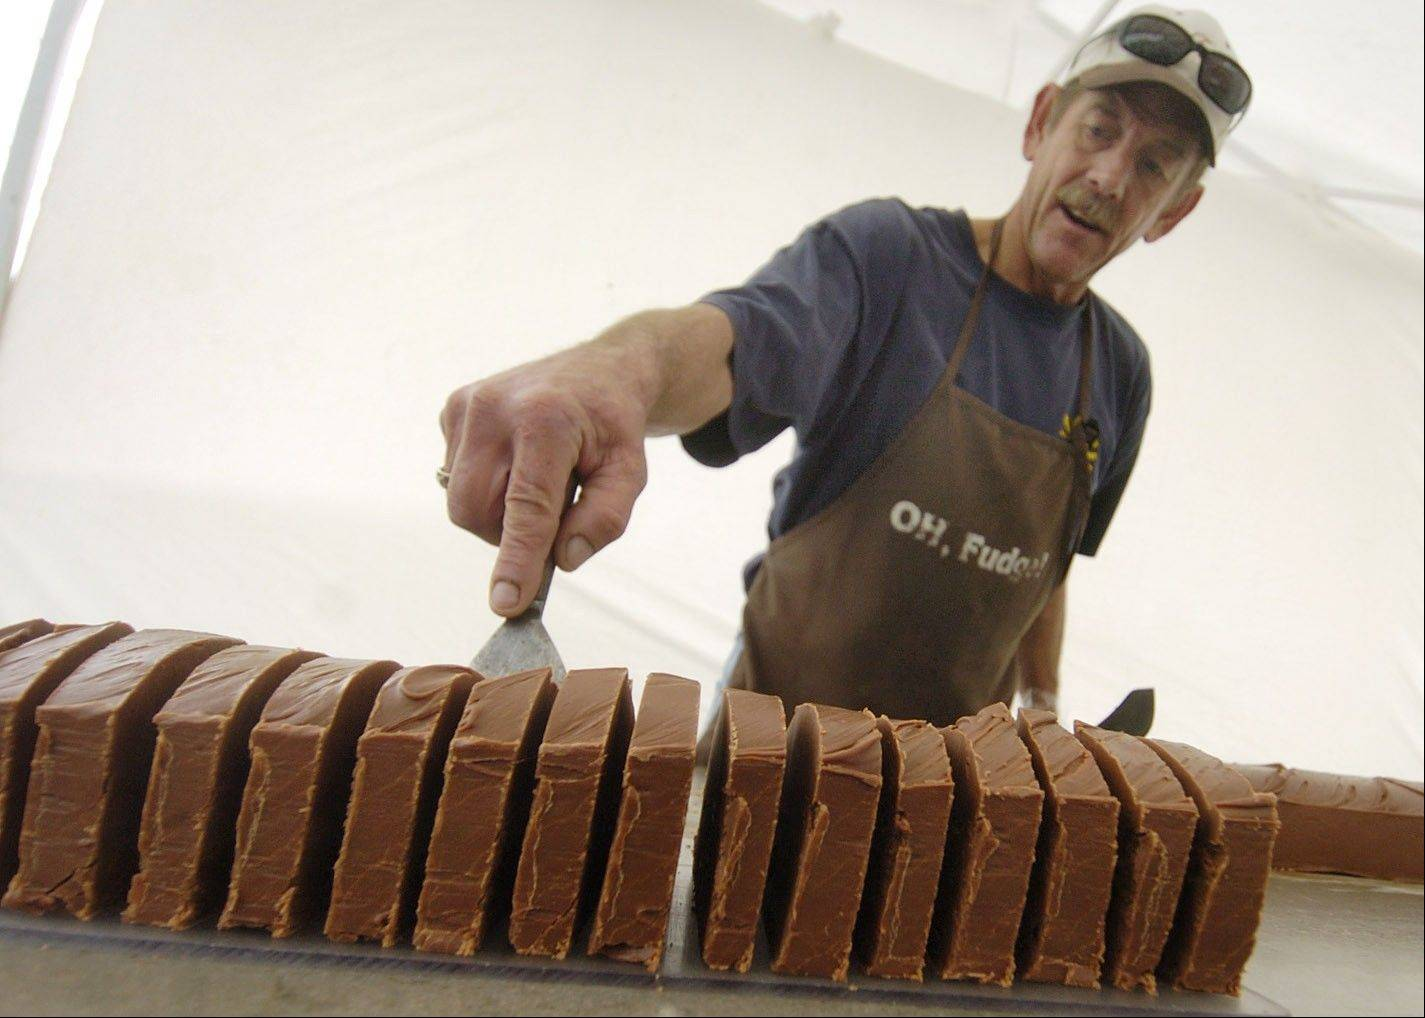 Bob Brown of Oh Fudge from Flemington, Mo., slices up his homemade fudge at last year's fest.